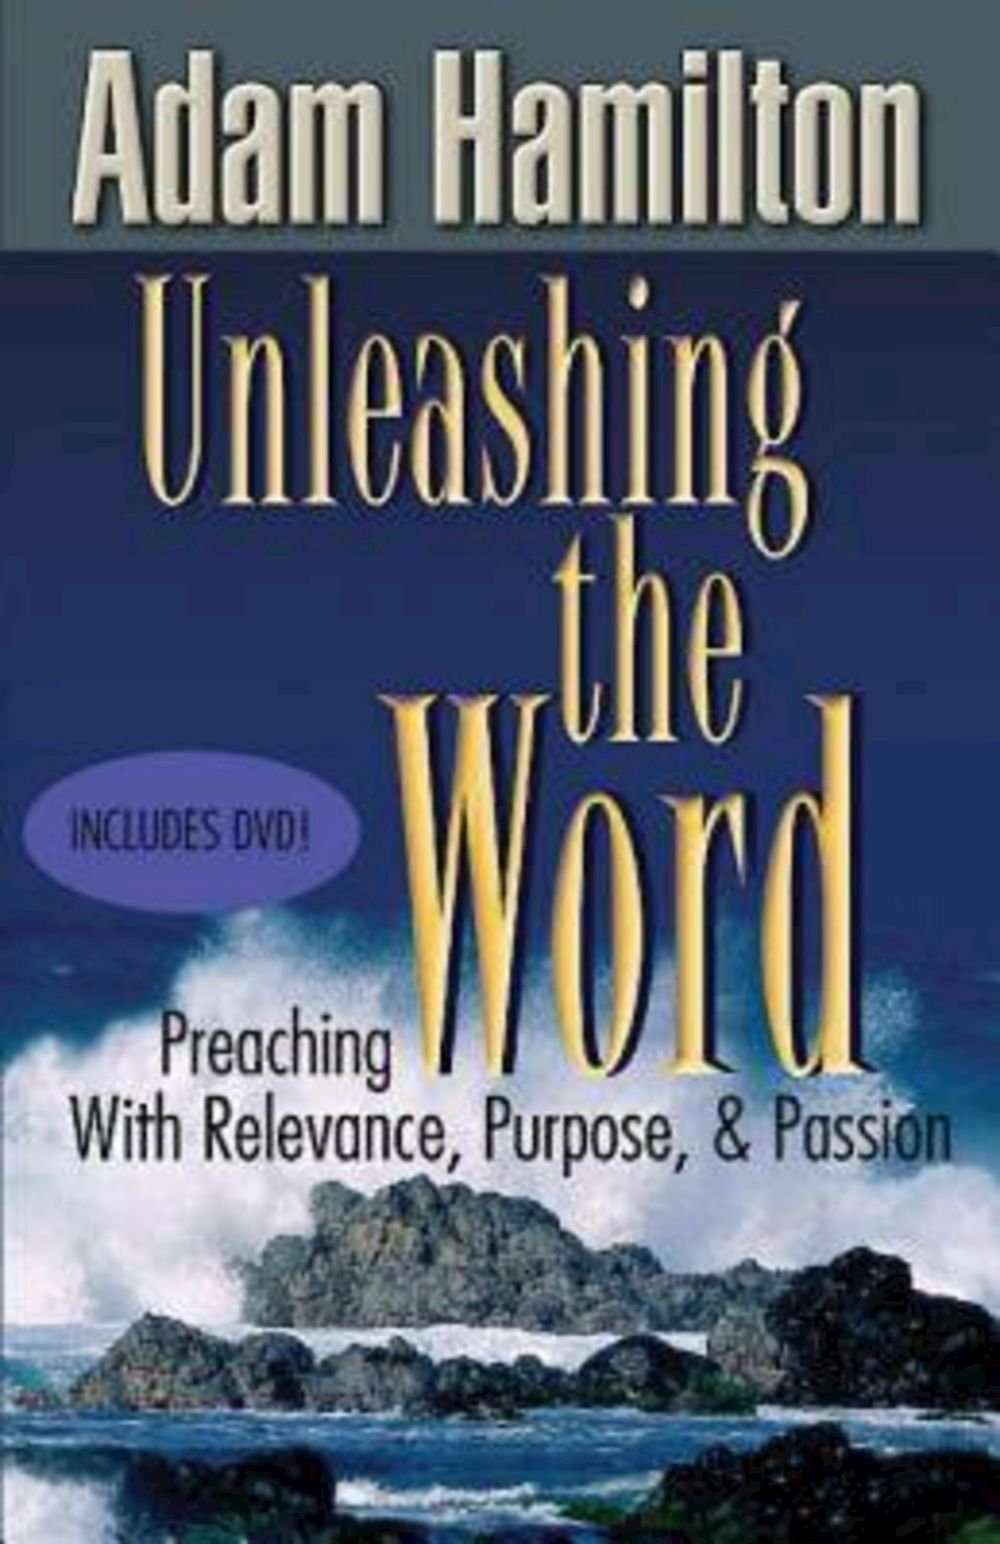 Unleashing the Word: Preaching with Relevance, Purpose, & Passion